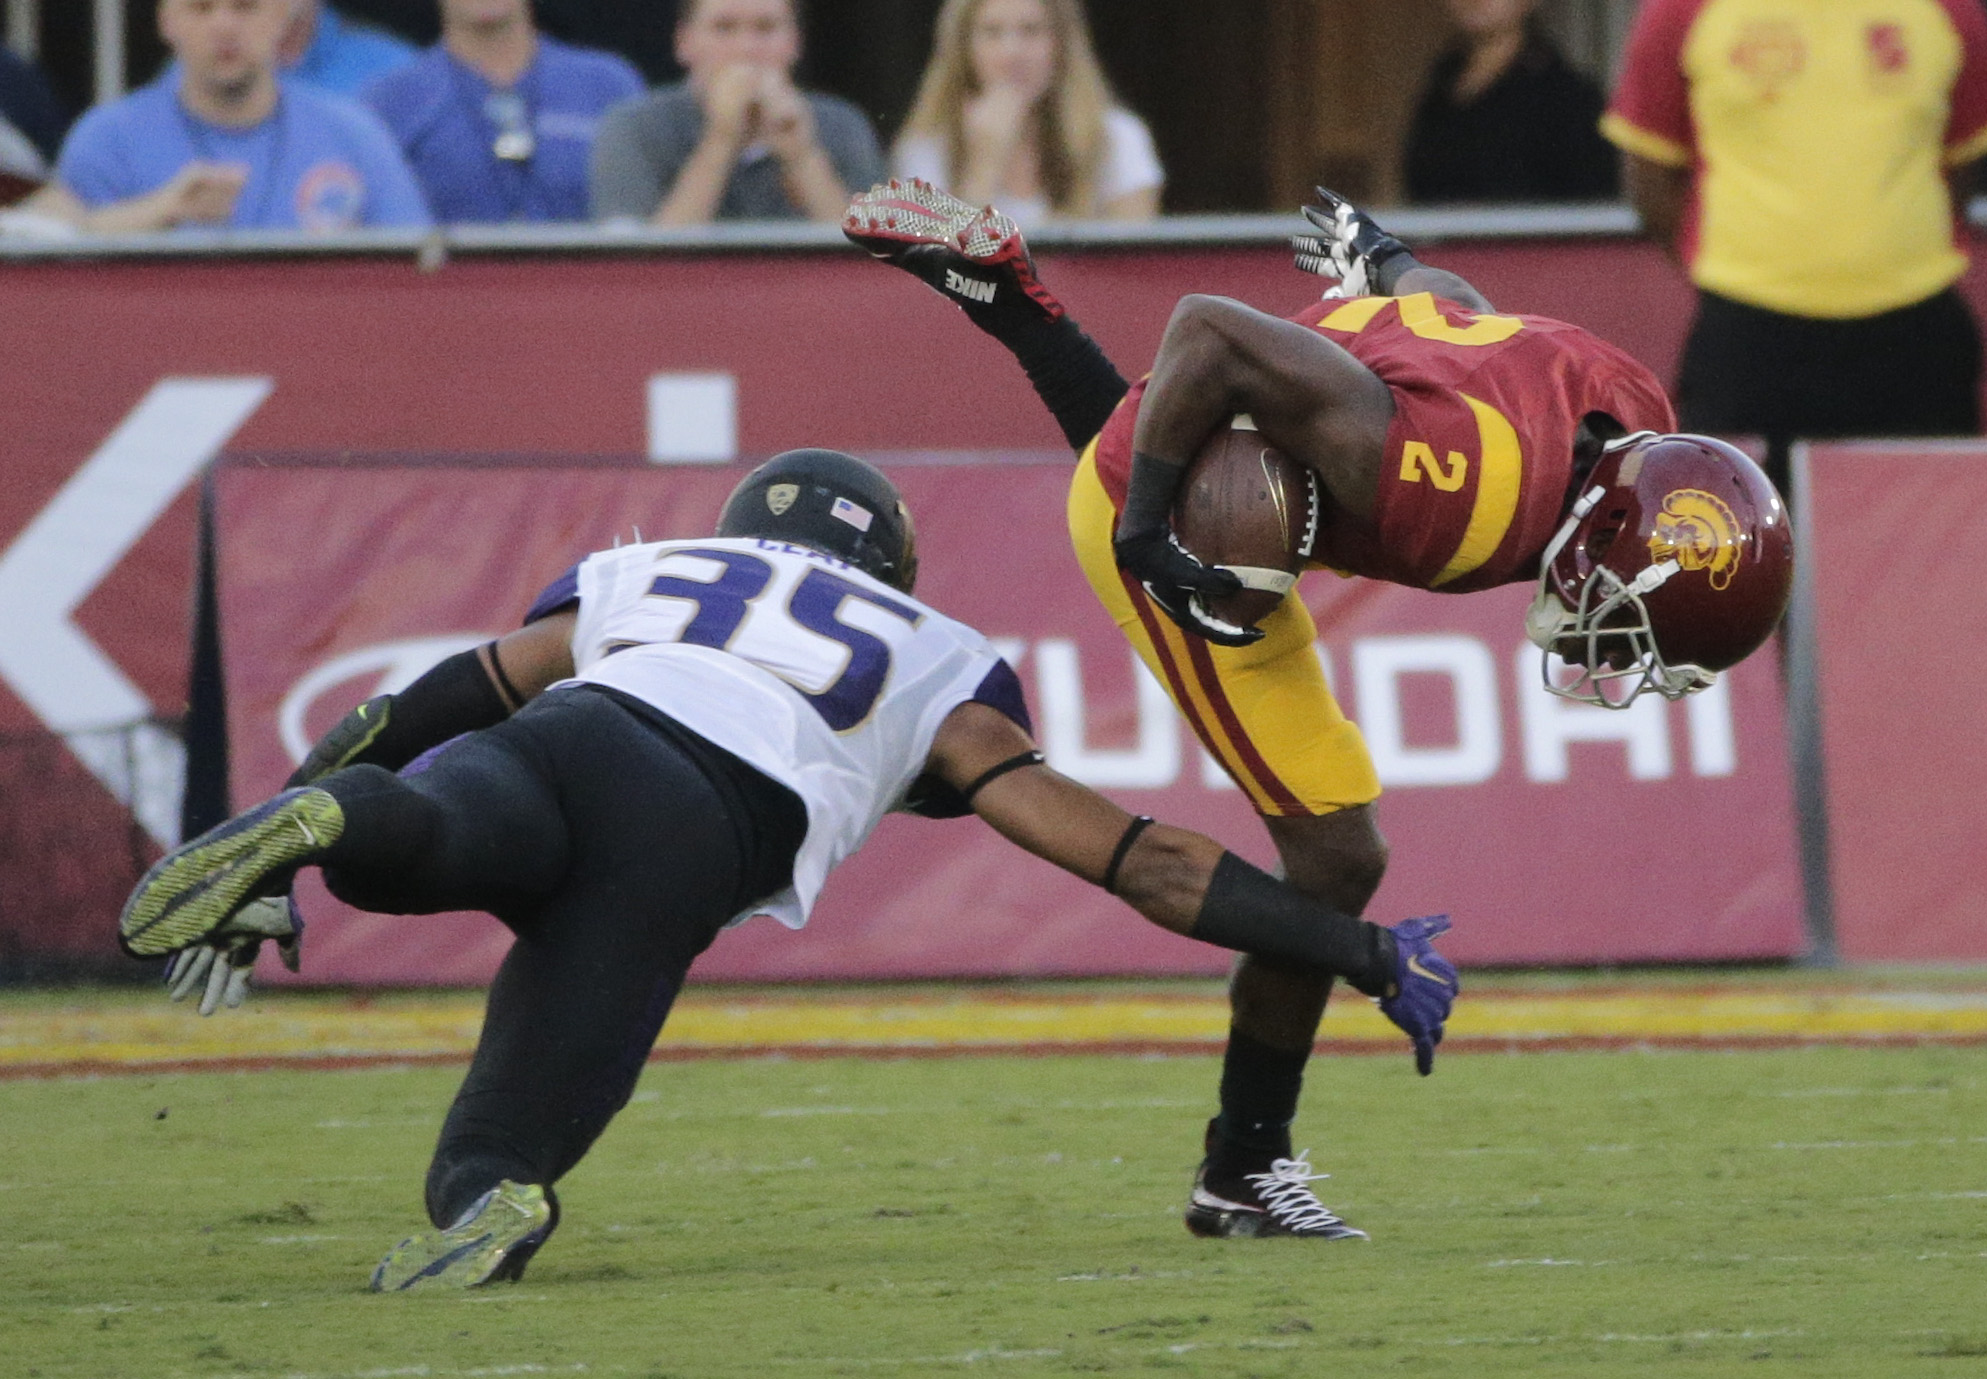 Southern California's Adoree' Jackson, right, avoids a tackle from Washington's Brian Clay during the first half of an NCAA college football game, Thursday, Oct. 8, 2015, in Los Angeles. (AP Photo/Jae C. Hong)